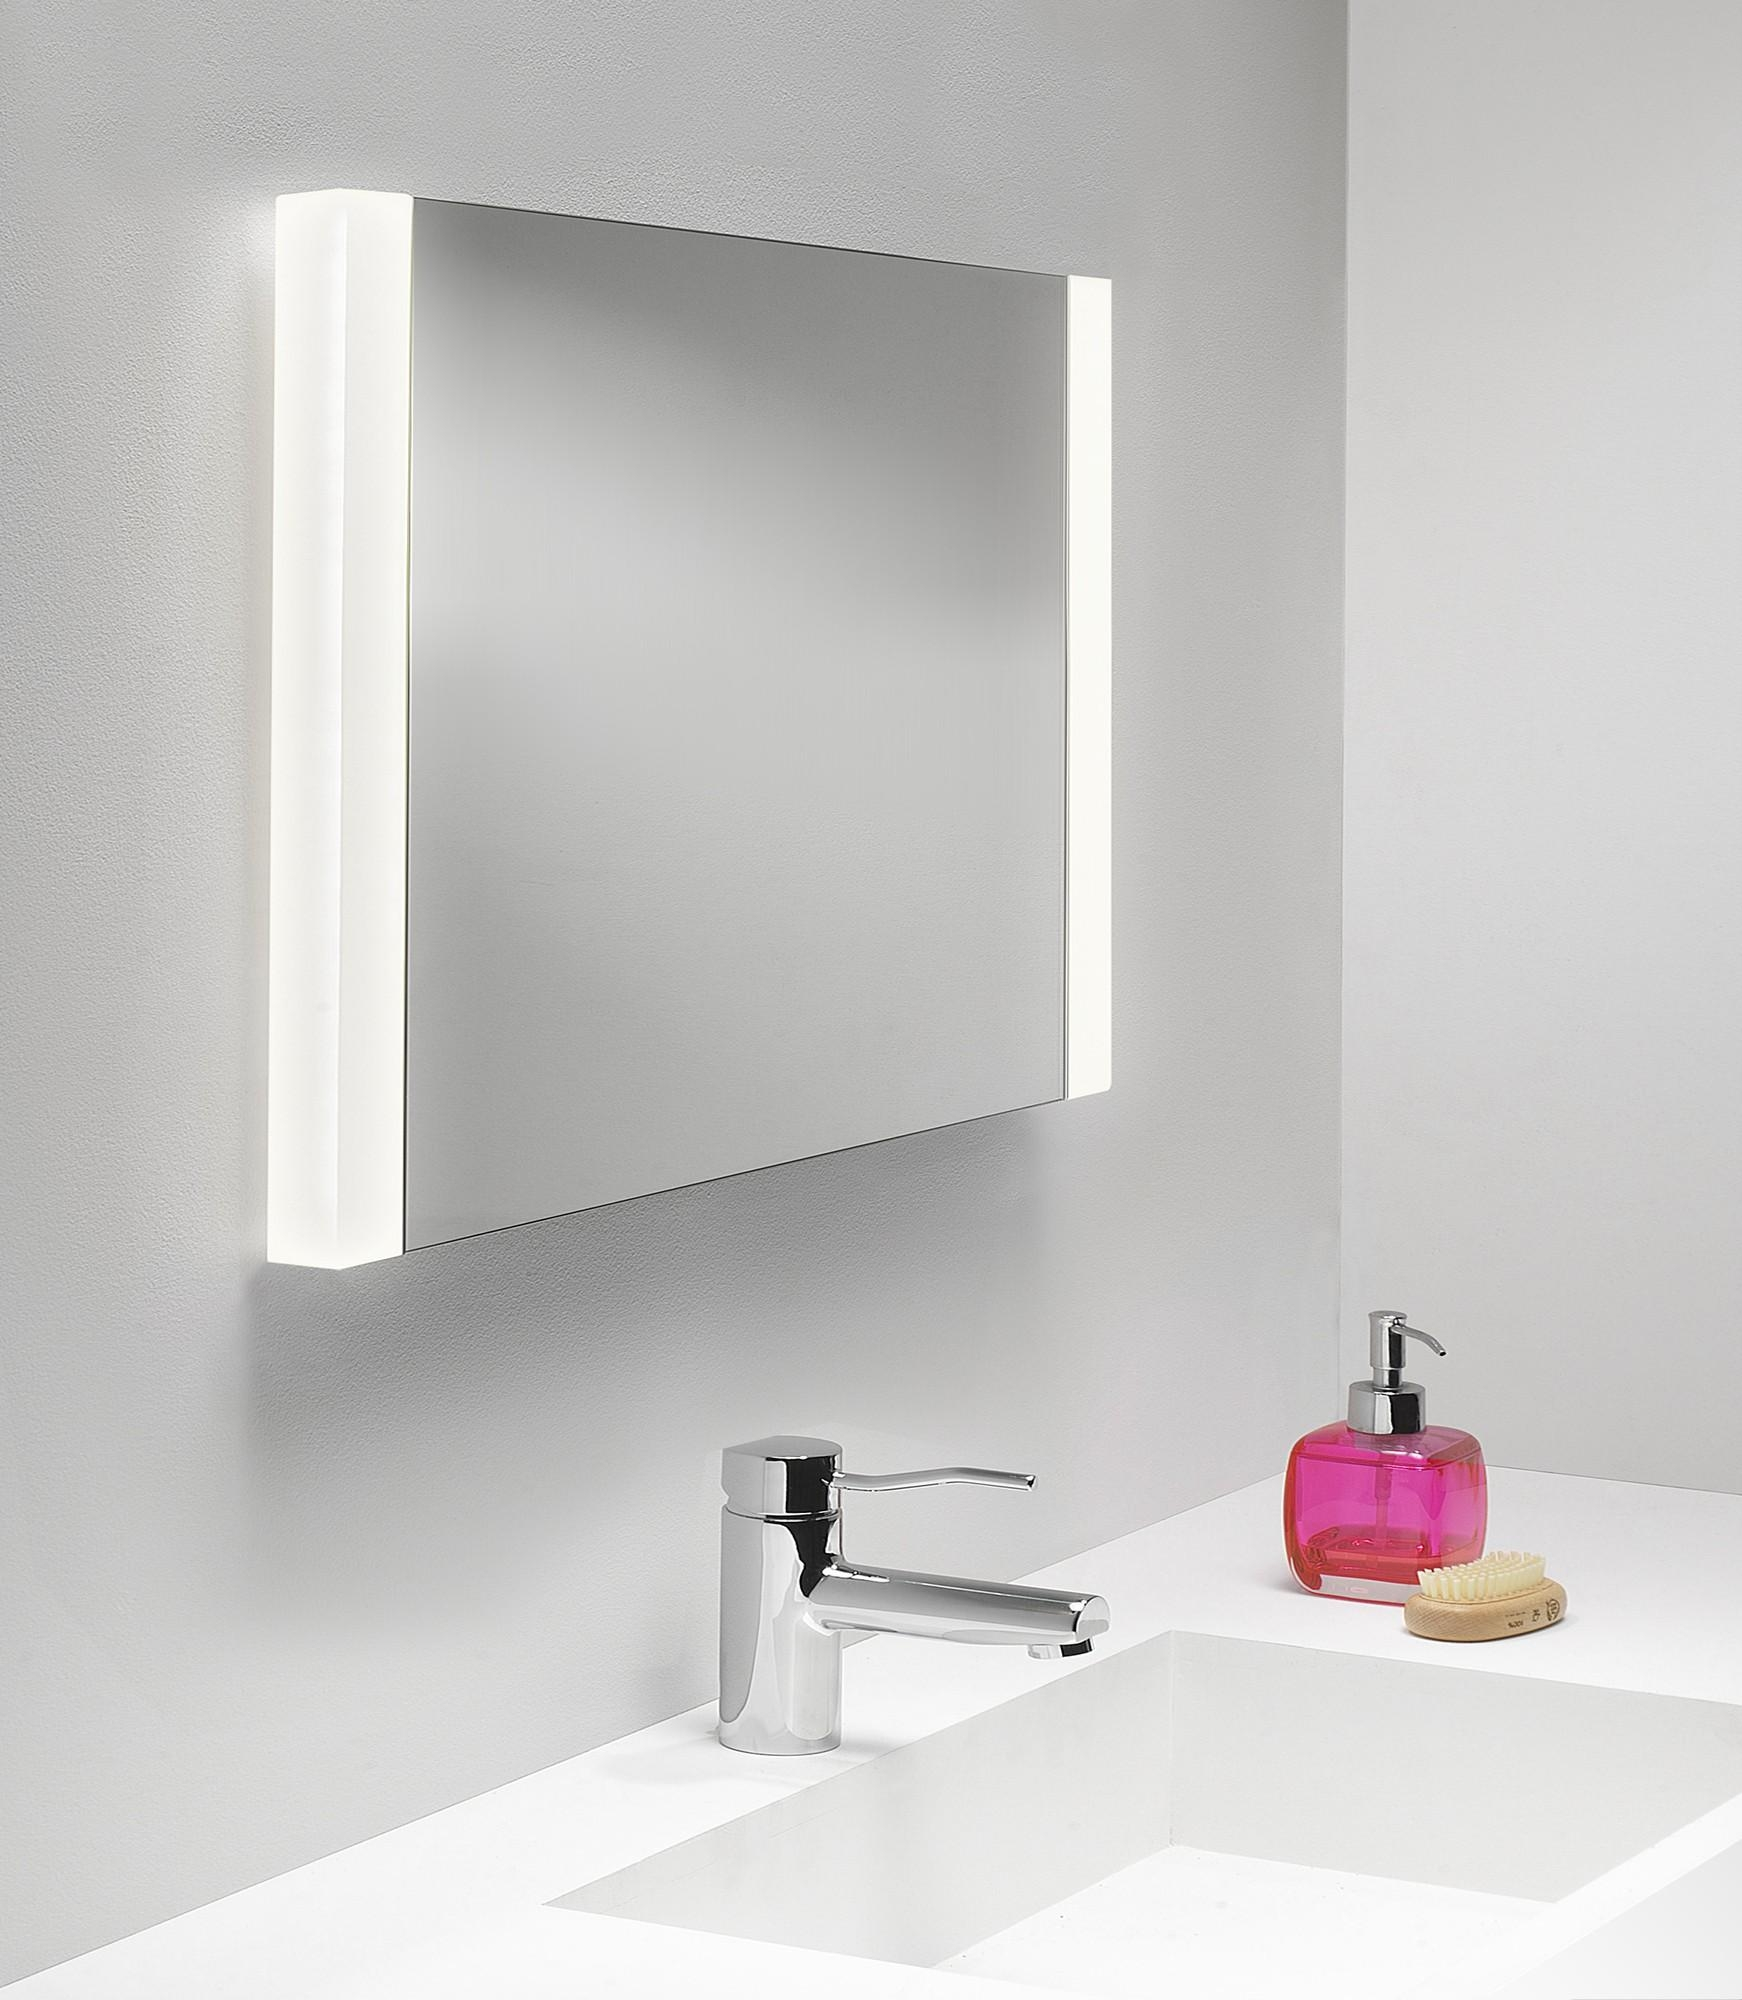 Bathrooms Design : Modern Bathroom Mirror Cabinets With Cabinet Throughout Free Standing Bathroom Mirrors (Image 15 of 20)